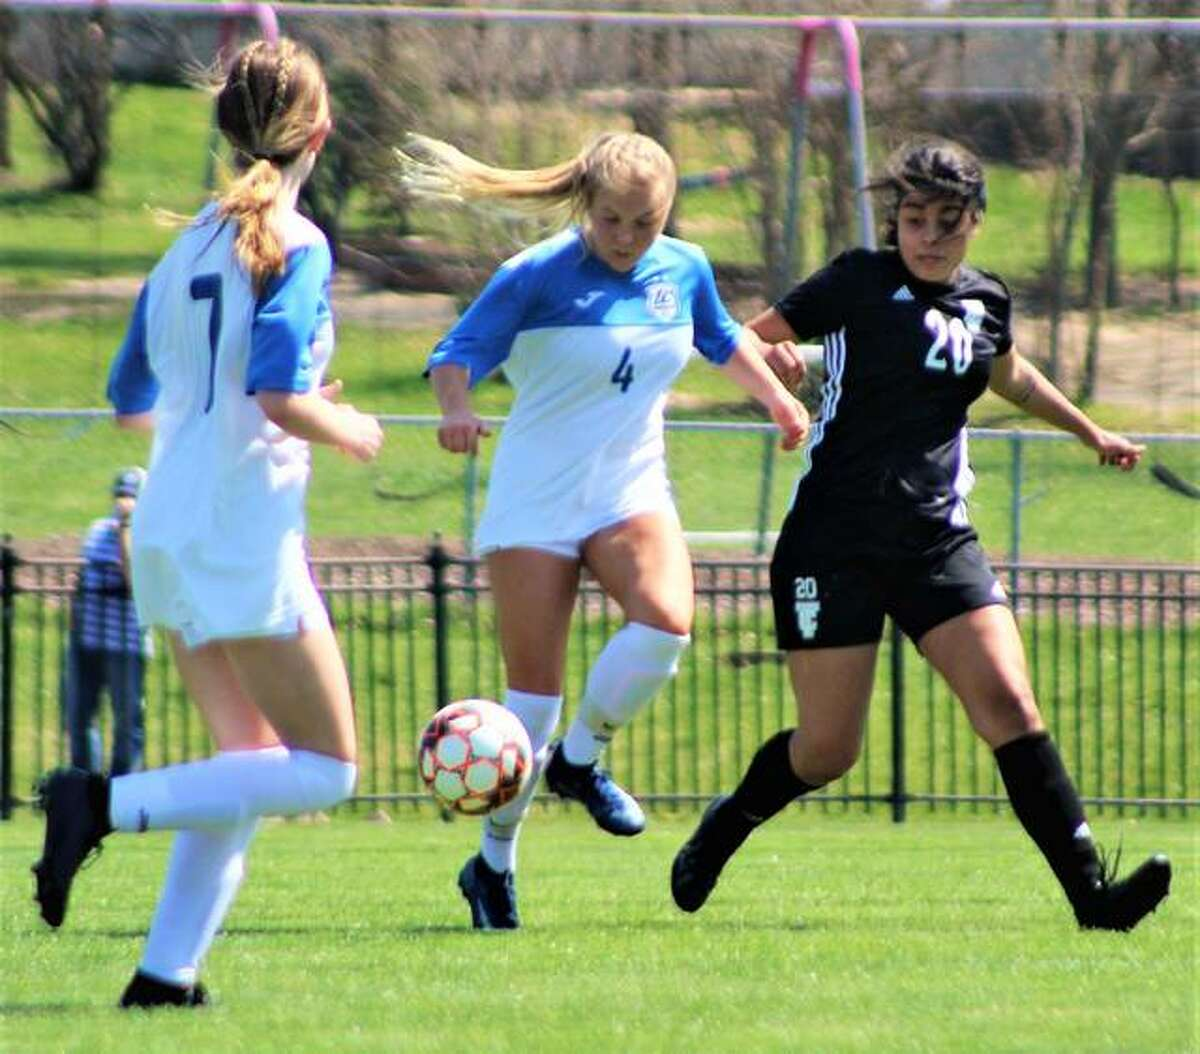 Skylar Hollingshead (4) scored a pair of goals for Lewis and Clark in Thursday's 3-1 victory over Illinois Central College in East Peoria. Hollingshead, a freshman from St. Dominic, is shown in action against Triton College earlier in the season.